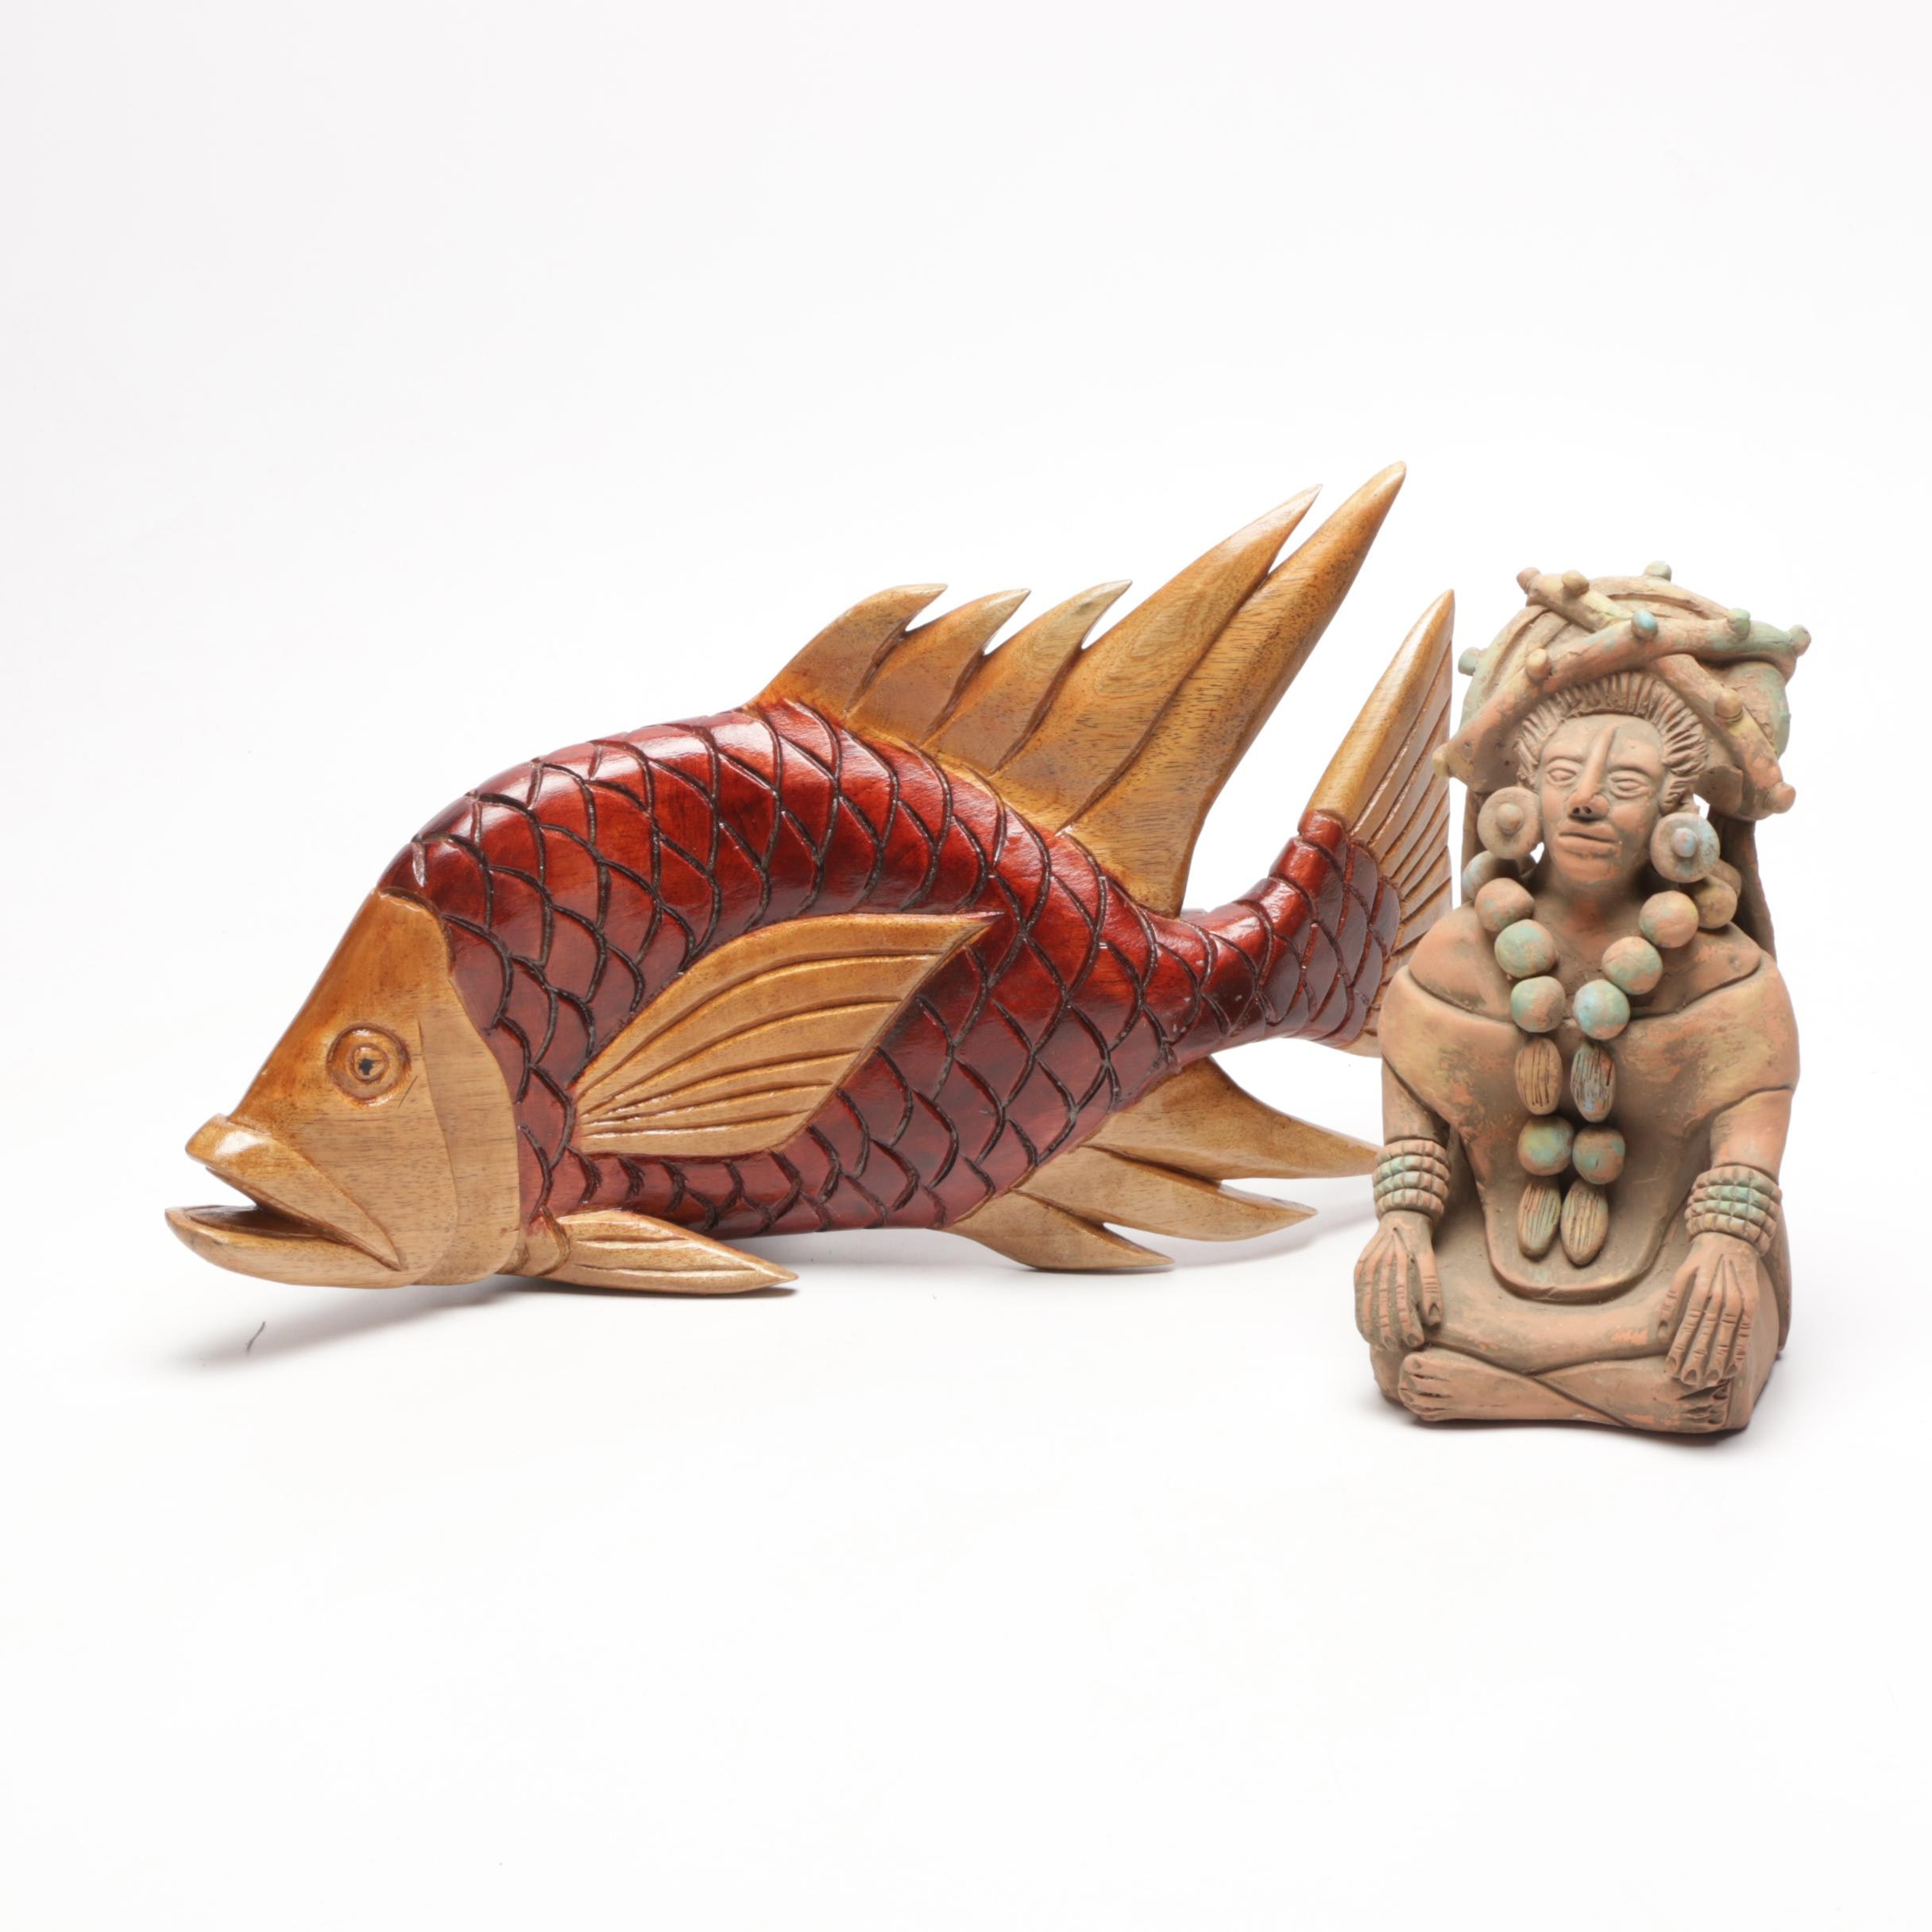 Jamaican Carved Wooden Fish and Ceramic Aztec Figurine